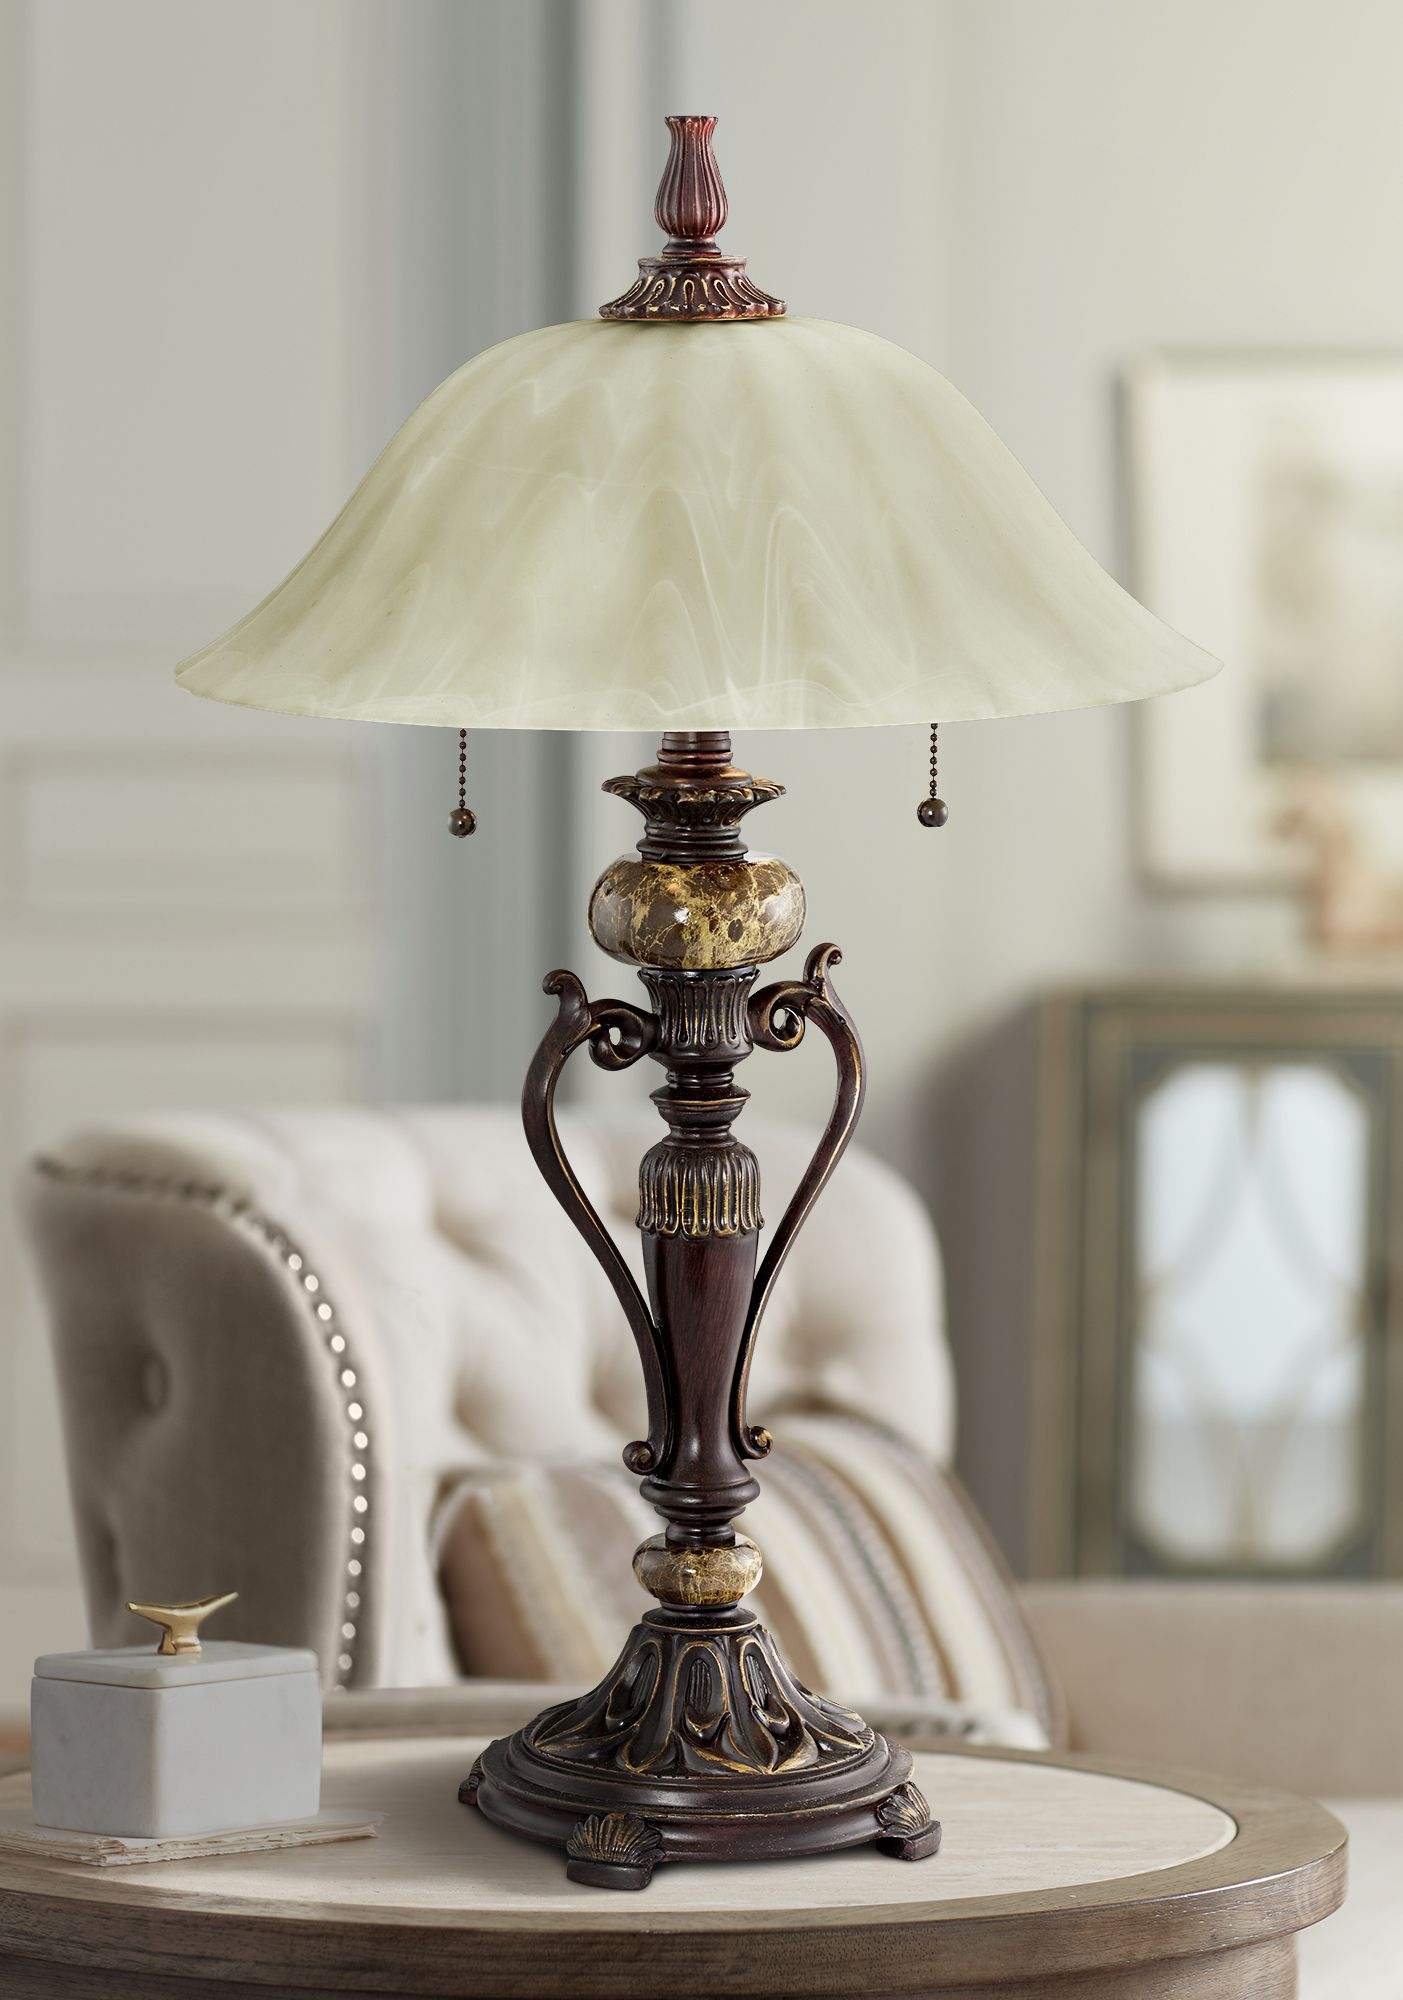 Charmant Amor Collection Glass Shade Table Lamp In Bronze